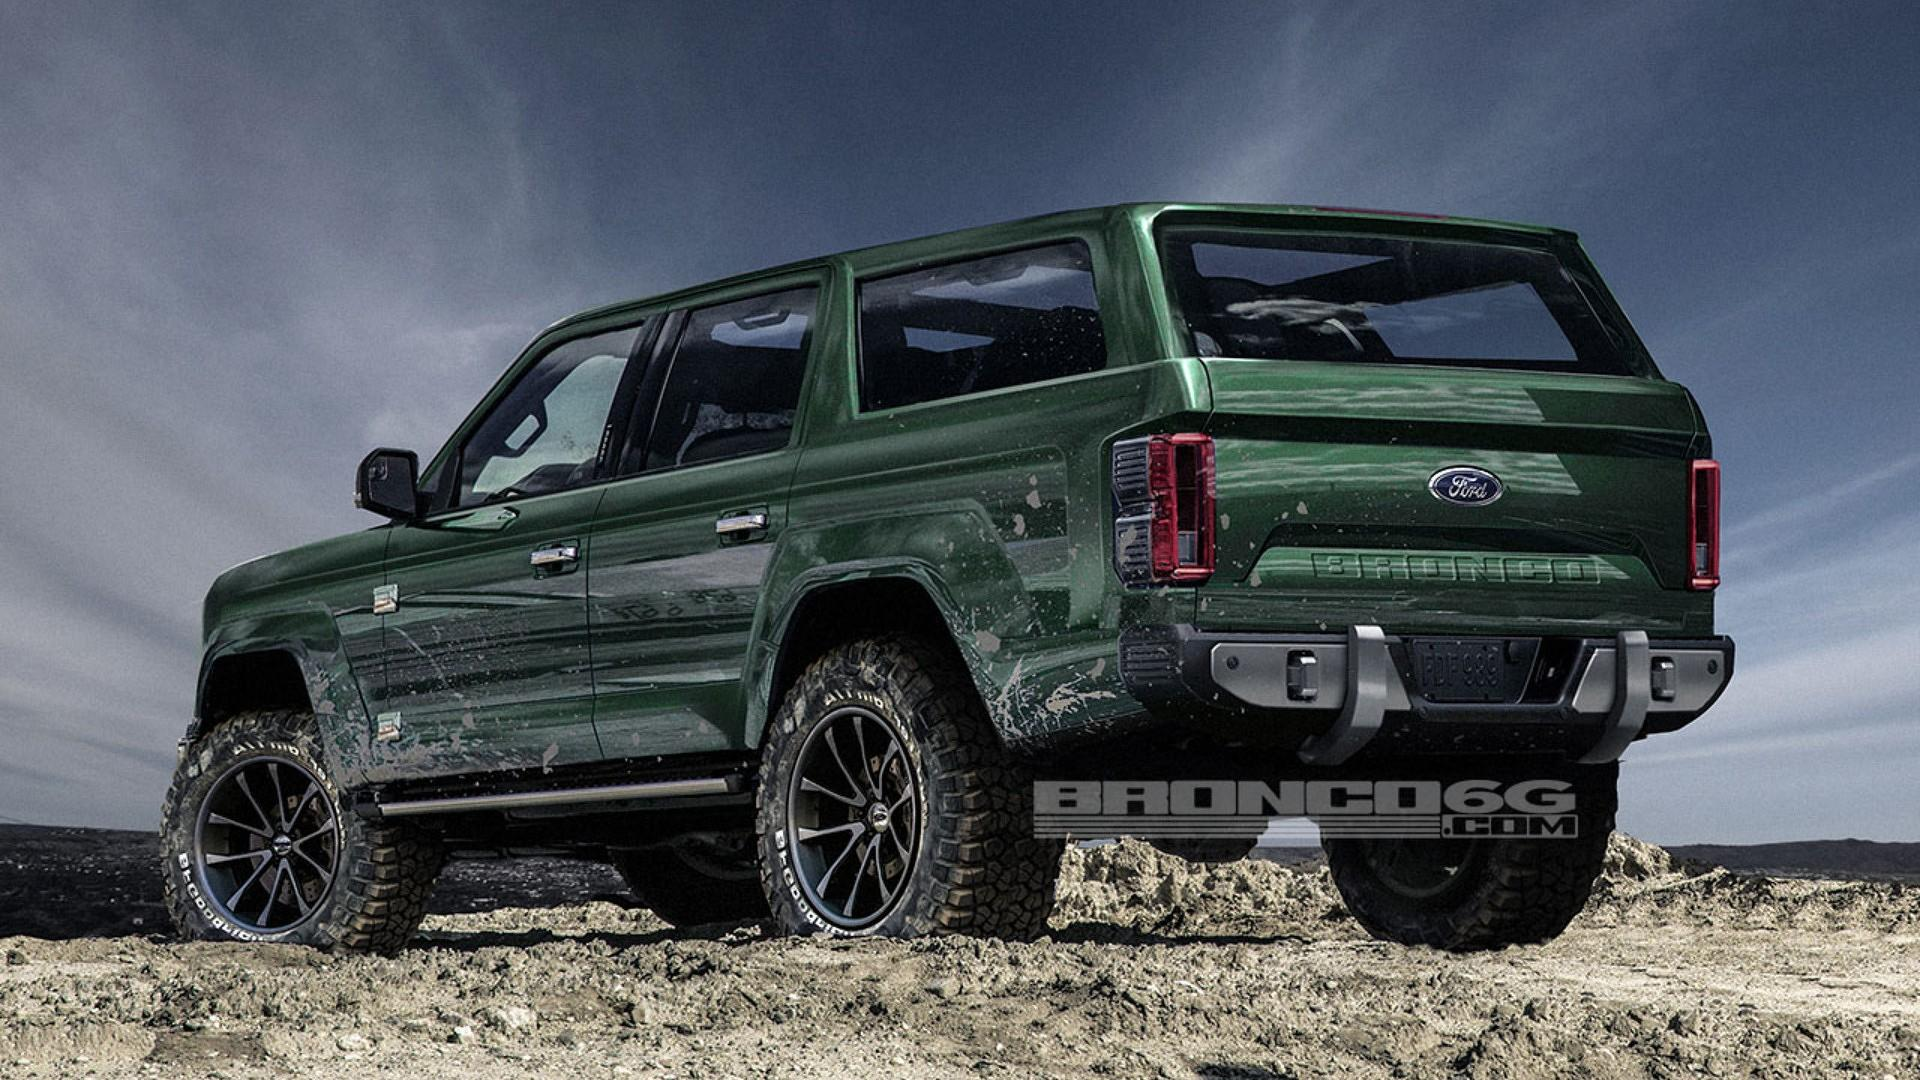 2020_Ford_Bronco_Renderings_08